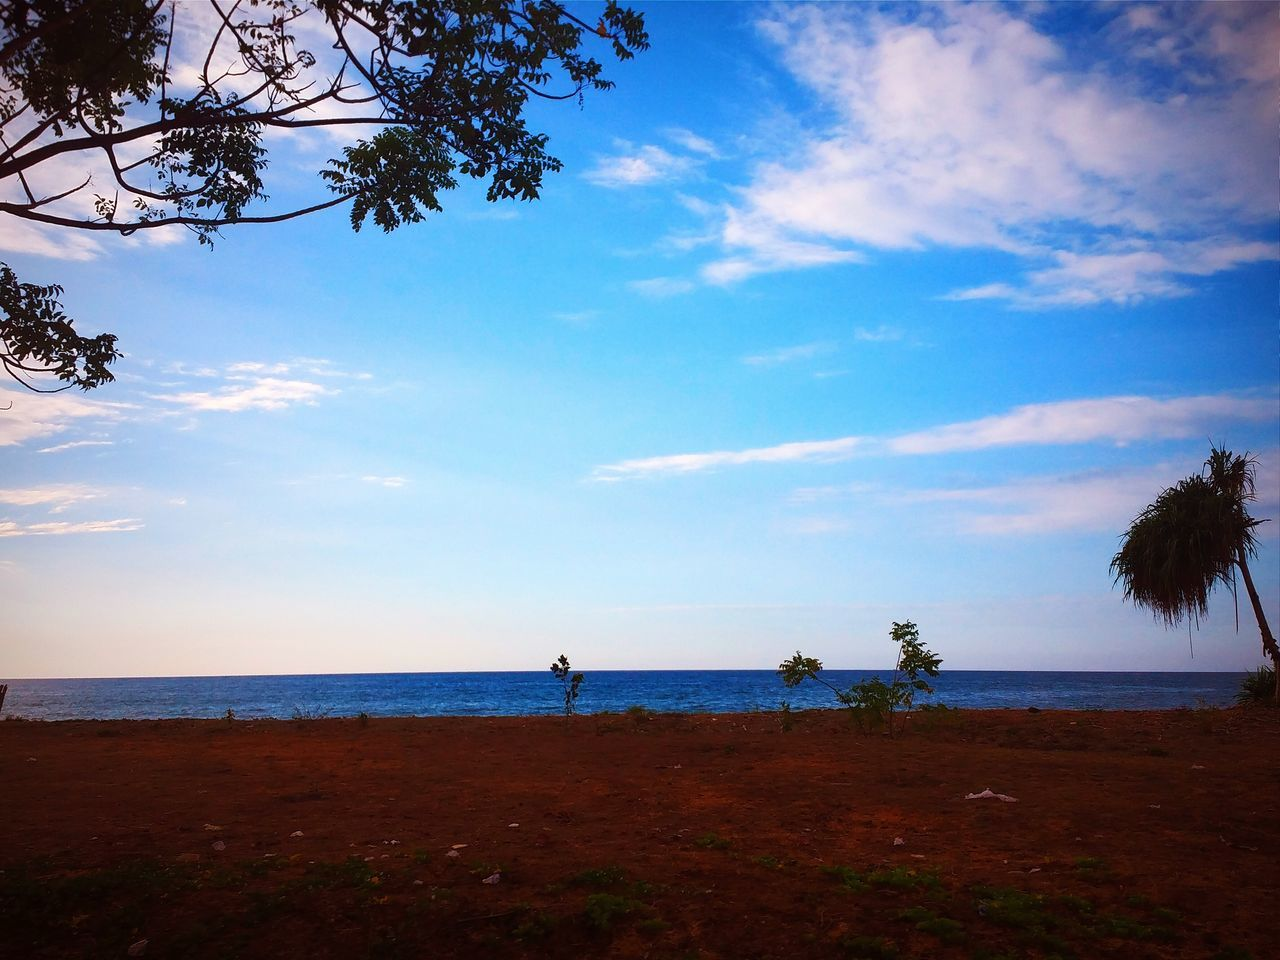 """""""Ocean View"""" I Love My City Nature On Your Doorstep Beautiful Nature Summer Days Indonesia Scenery Landscape"""